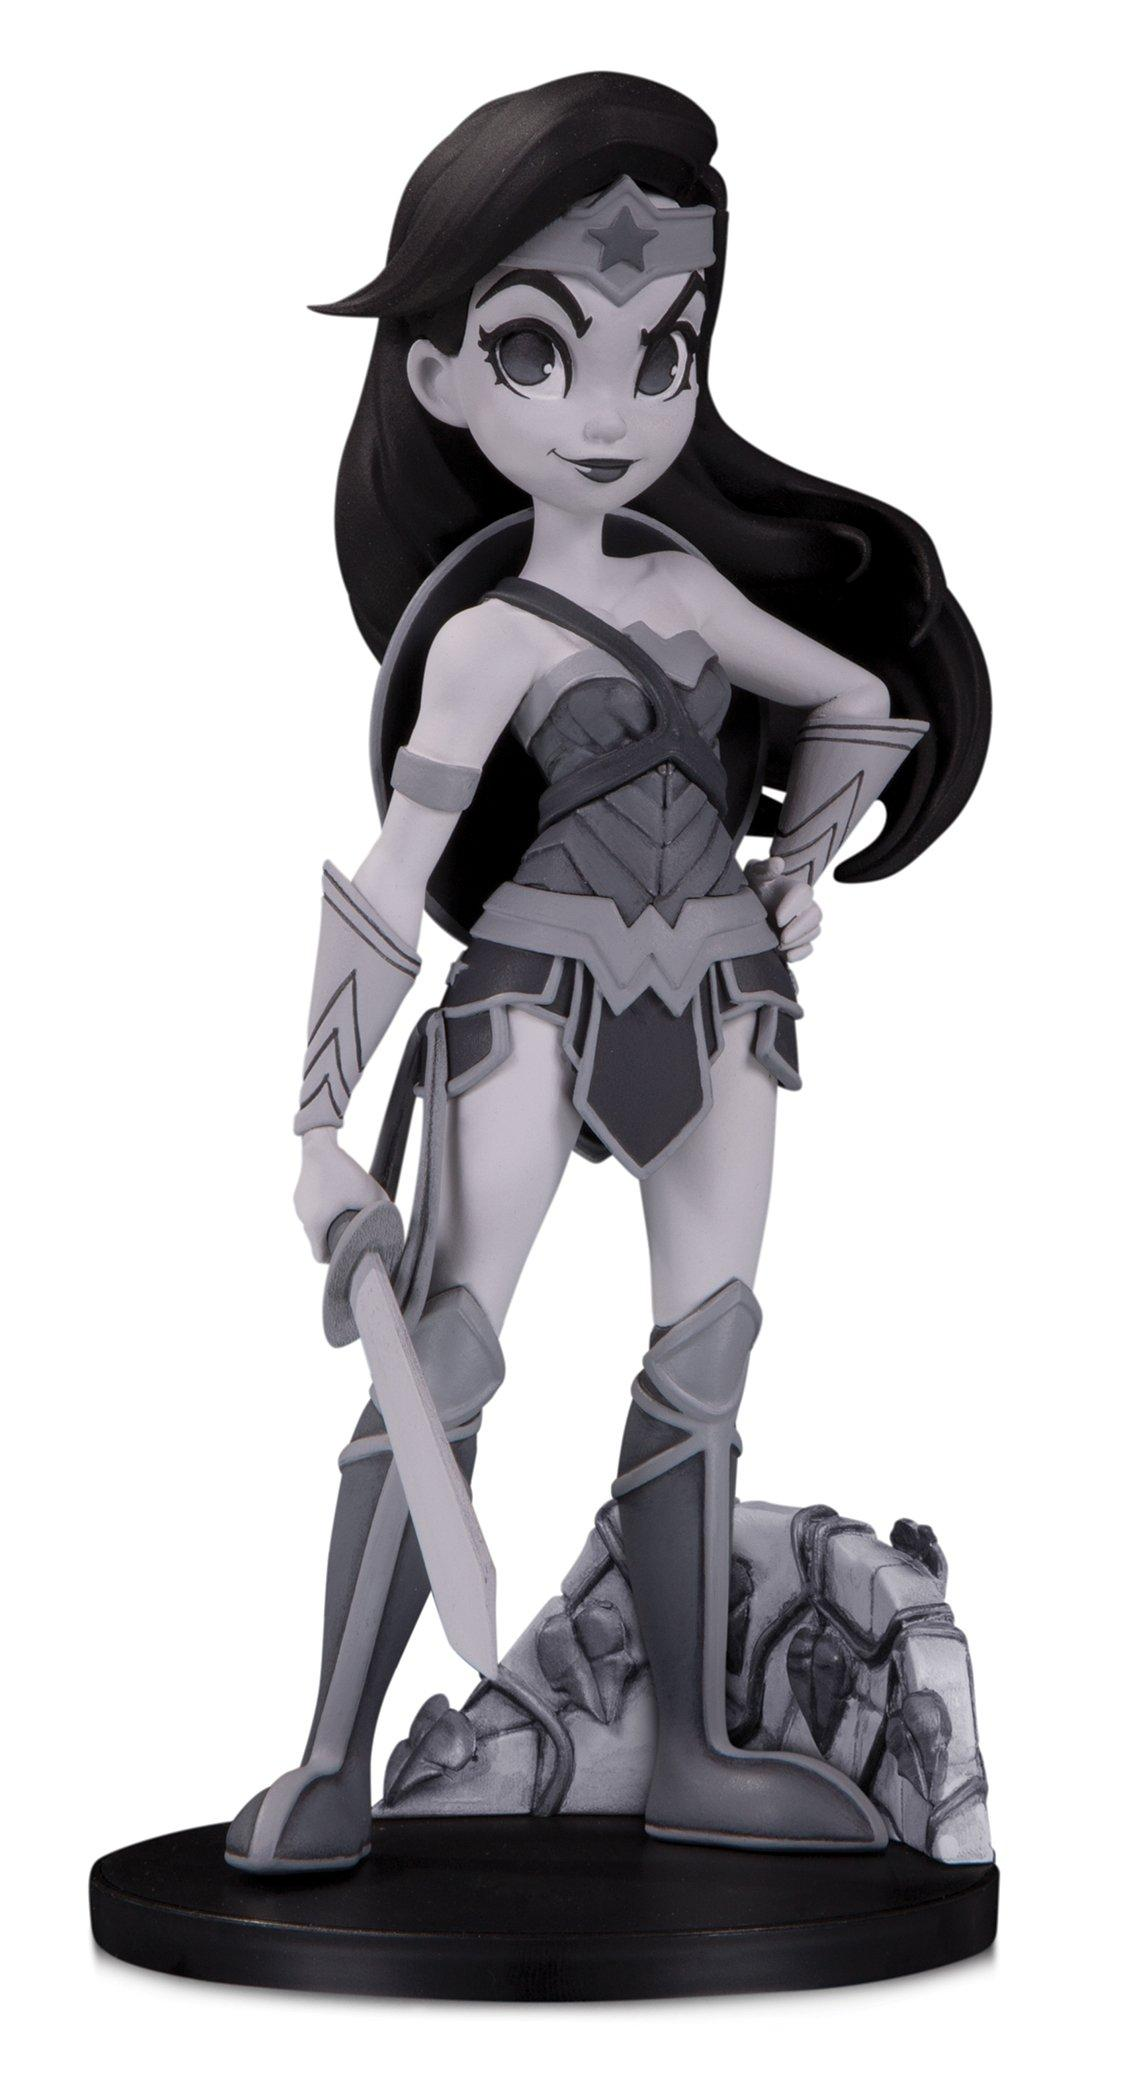 DC Collectibles Artists Alley Black /& White Variant by Chrissie Zullo Batgirl